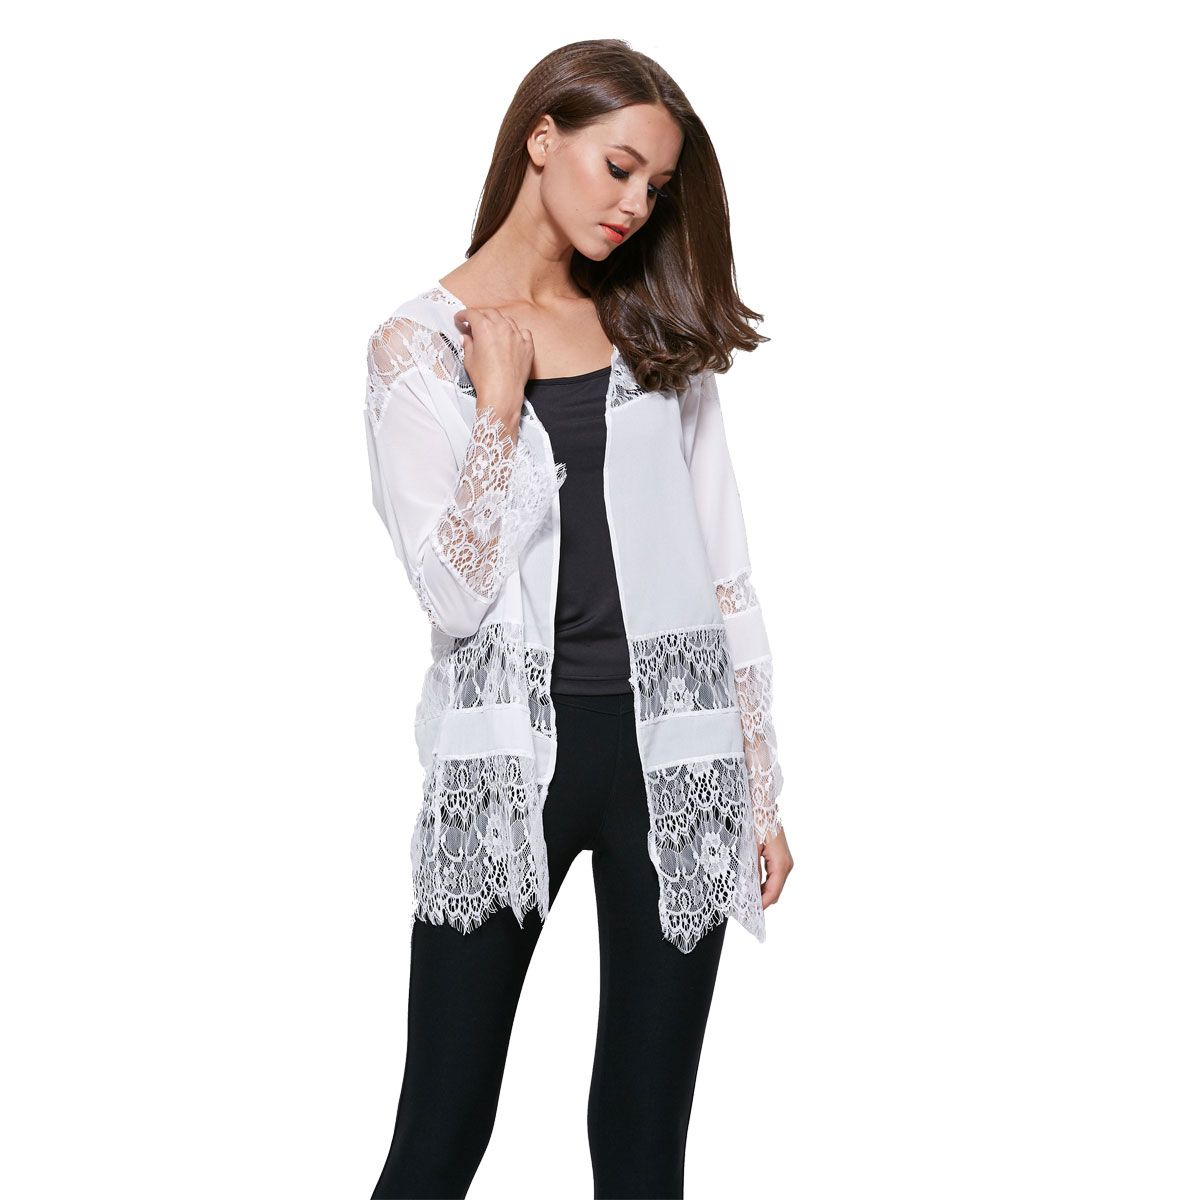 Find More Blouses & Shirts Information about Free shipping new sale Gypsy Bohemia women's Lace Black Kimono Top Blouse Cardigan Jacket S M L 64013,High Quality blouse back,China blouse lace Suppliers, Cheap jacket shorts from Win-win 01 on Aliexpress.com